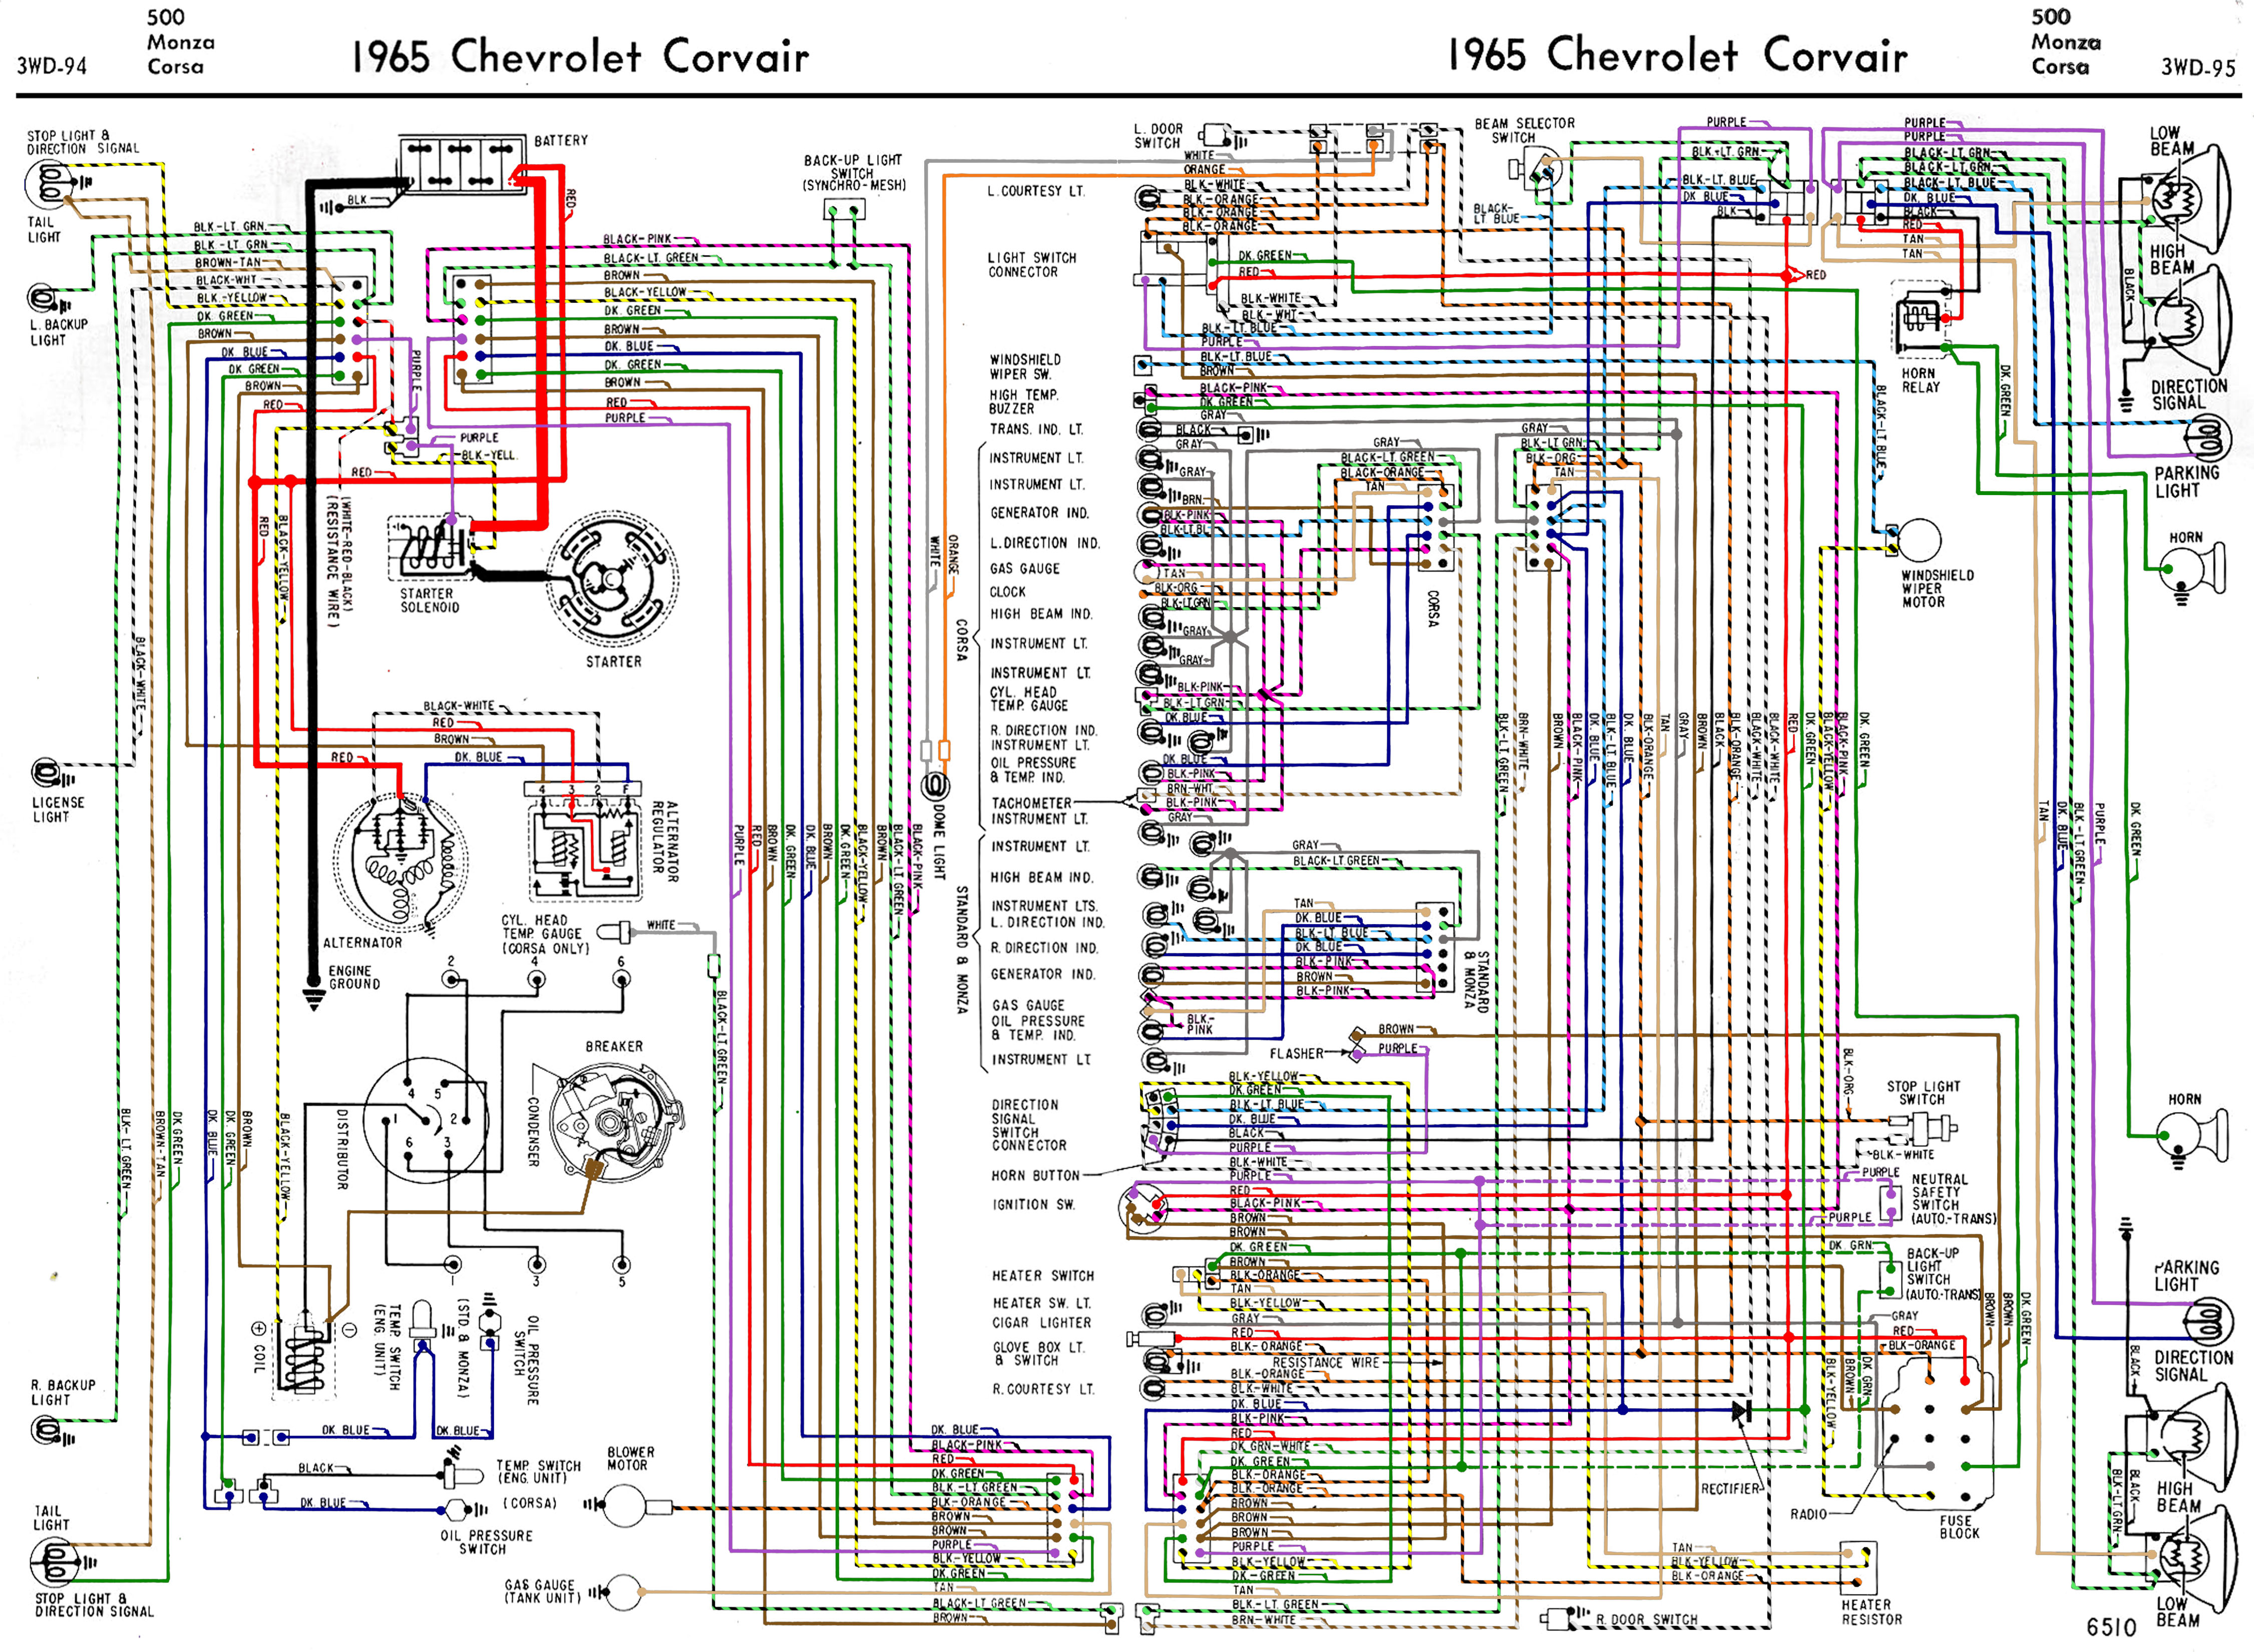 together with  together with 1965 corvair schematic likewise 2012 07 21 161408 diagram2 further  further qu53898 800 additionally  in addition  likewise 2012 08 16 082723 55 belair wiring diagram together with  also 8ed77c7245ce83c661b6b815e57ba3be. on 1954 chevy truck turn signal wiring diagram